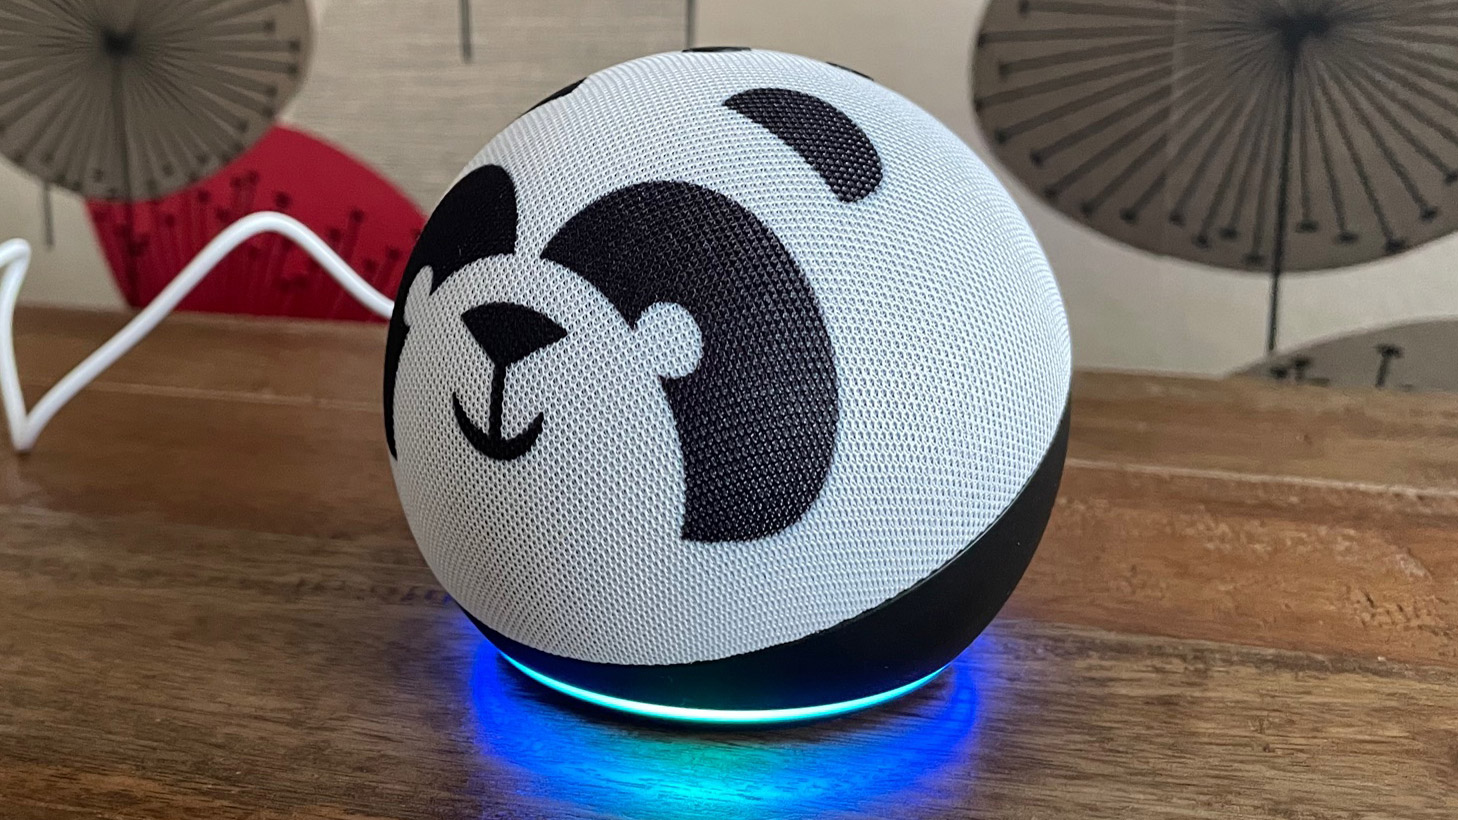 The side view of Amazon Echo Dot Kids smart speaker on a wooden table with a patterned background